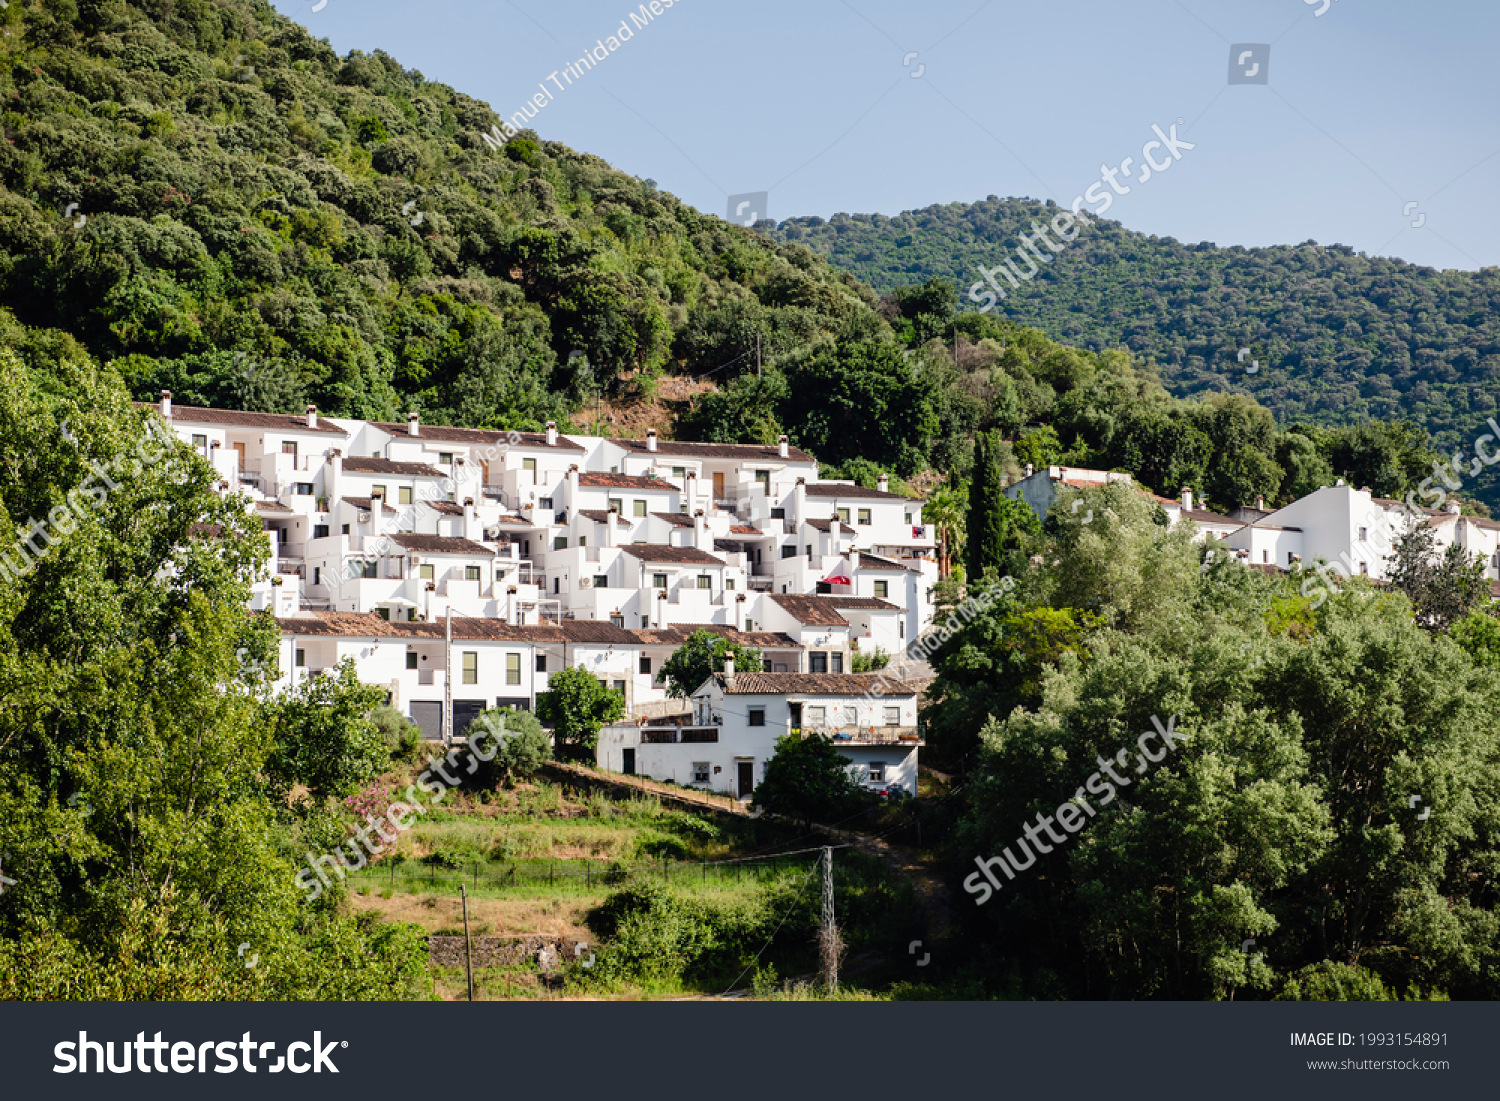 Benamahoma, one of the white towns in the province of Cadiz, Andalusia, Spain.